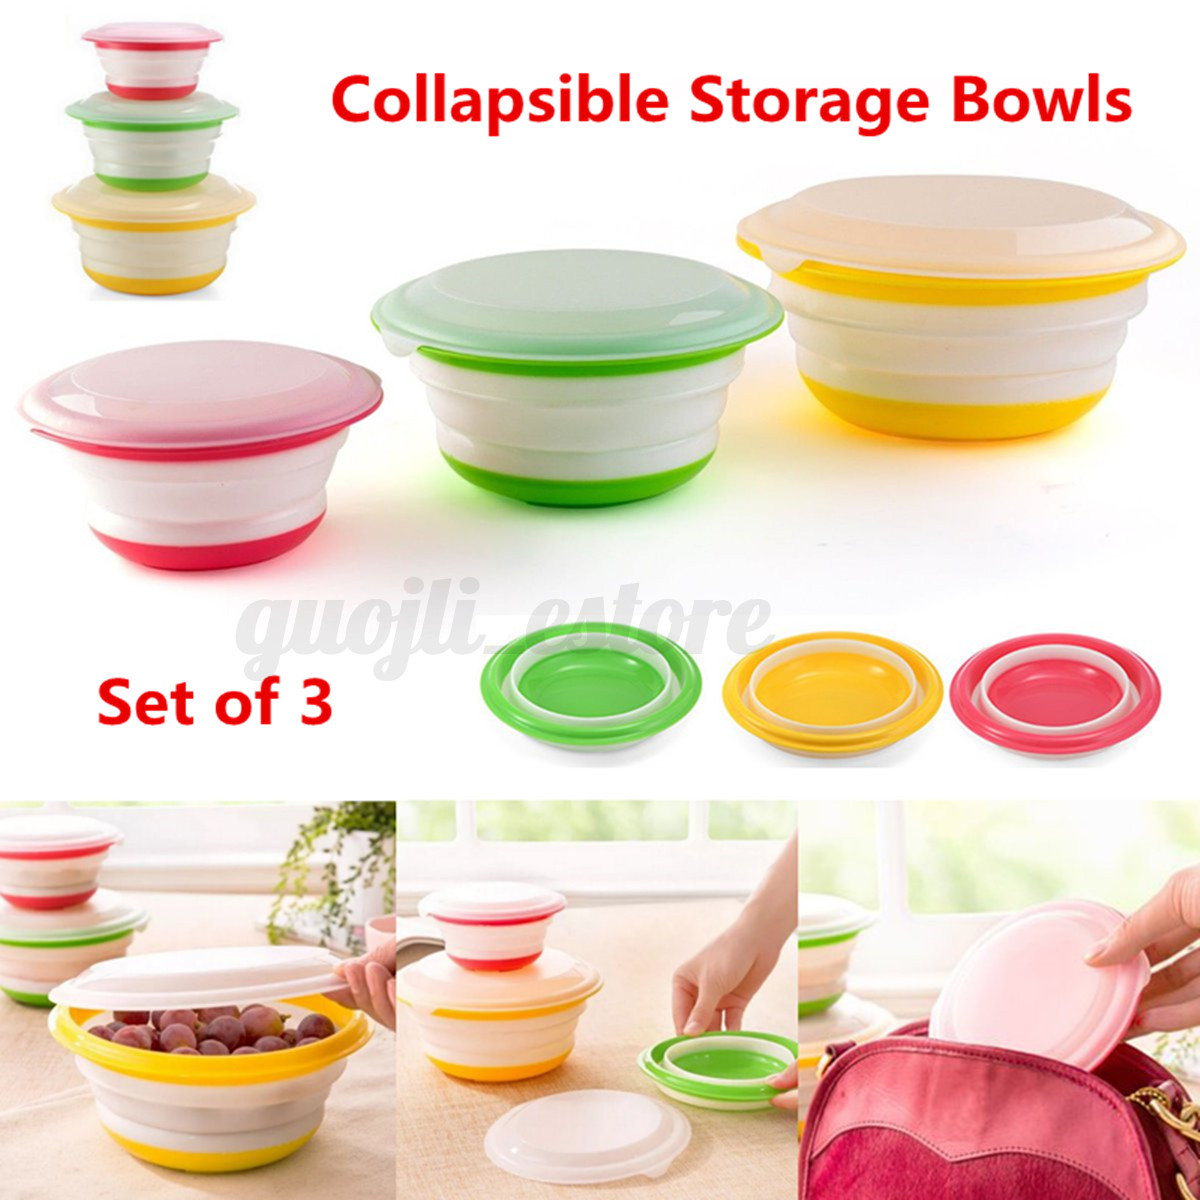 Collapsible Food Storage Containers With Lids